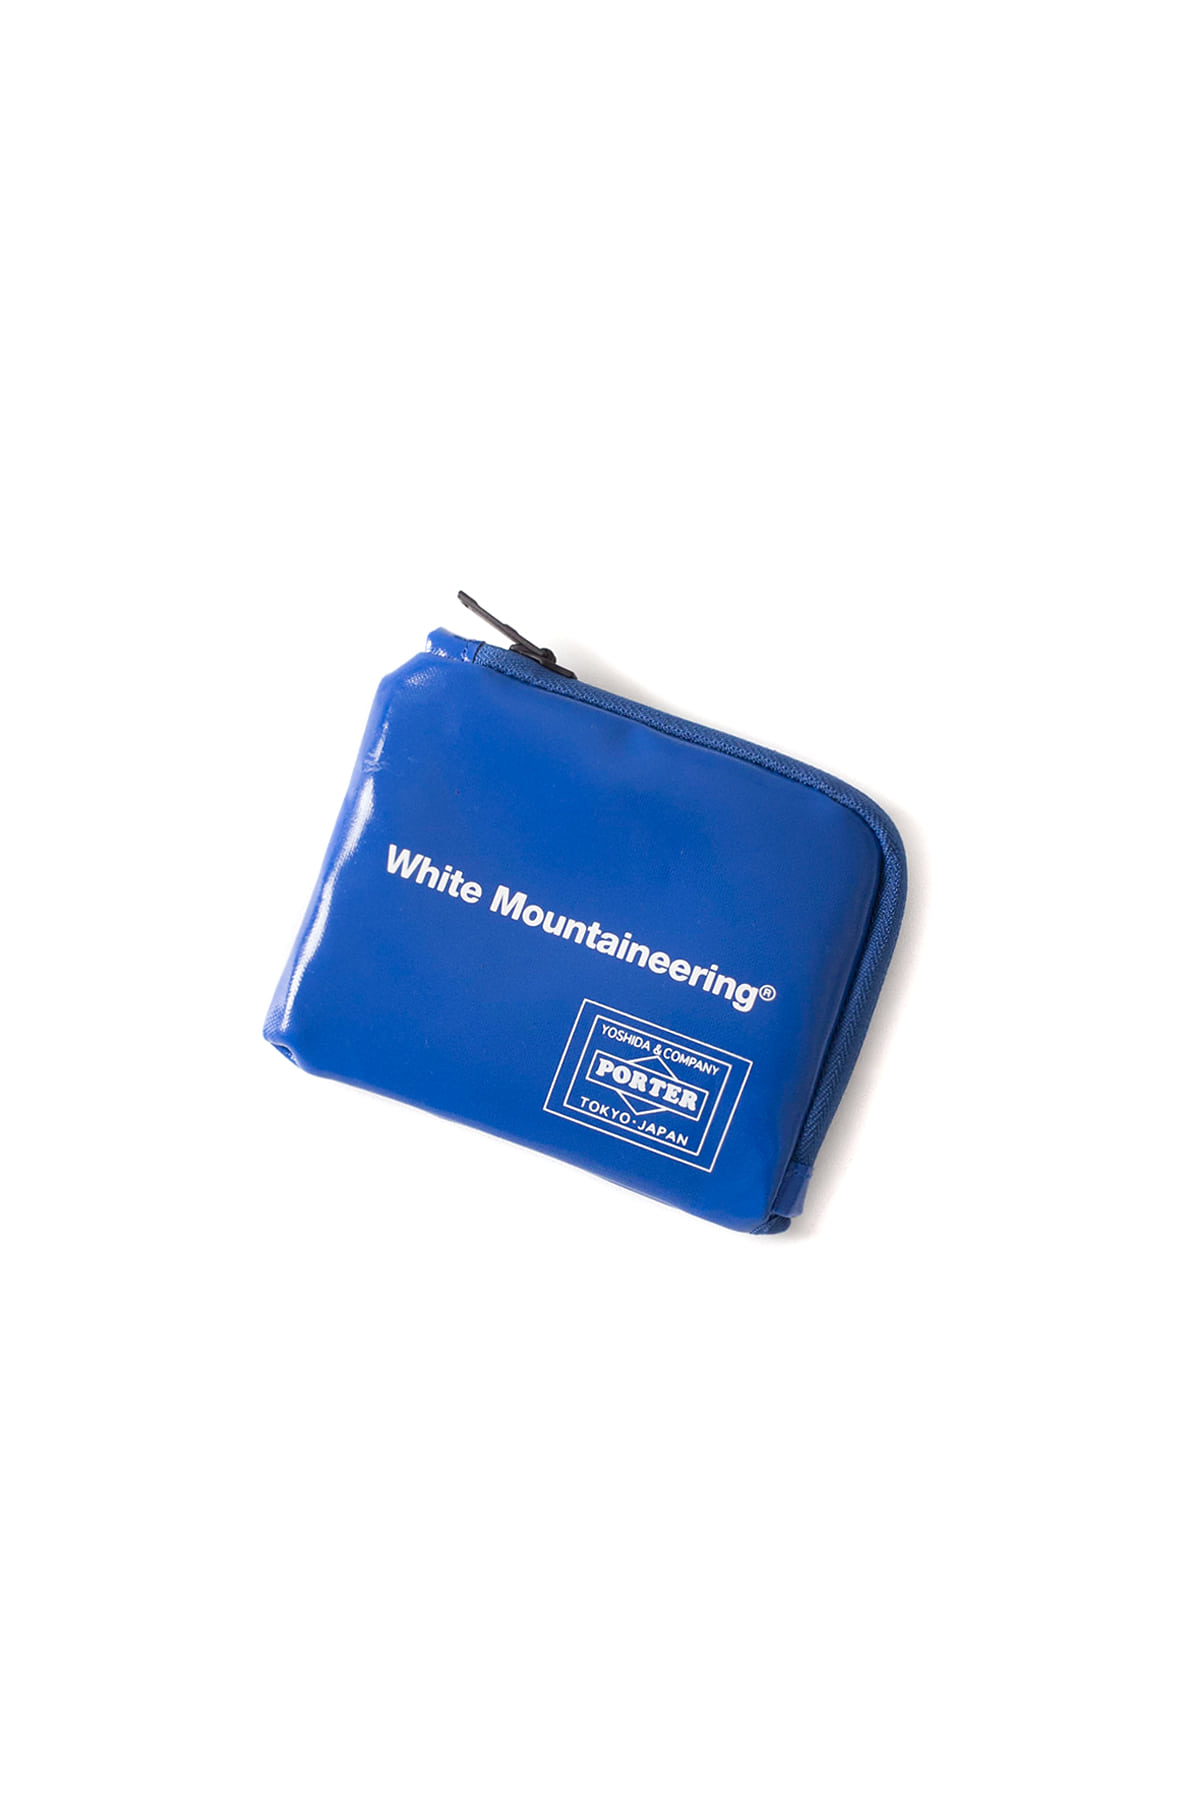 WHITE MOUNTAINEERING : WM x PORTER Wallet (Blue)